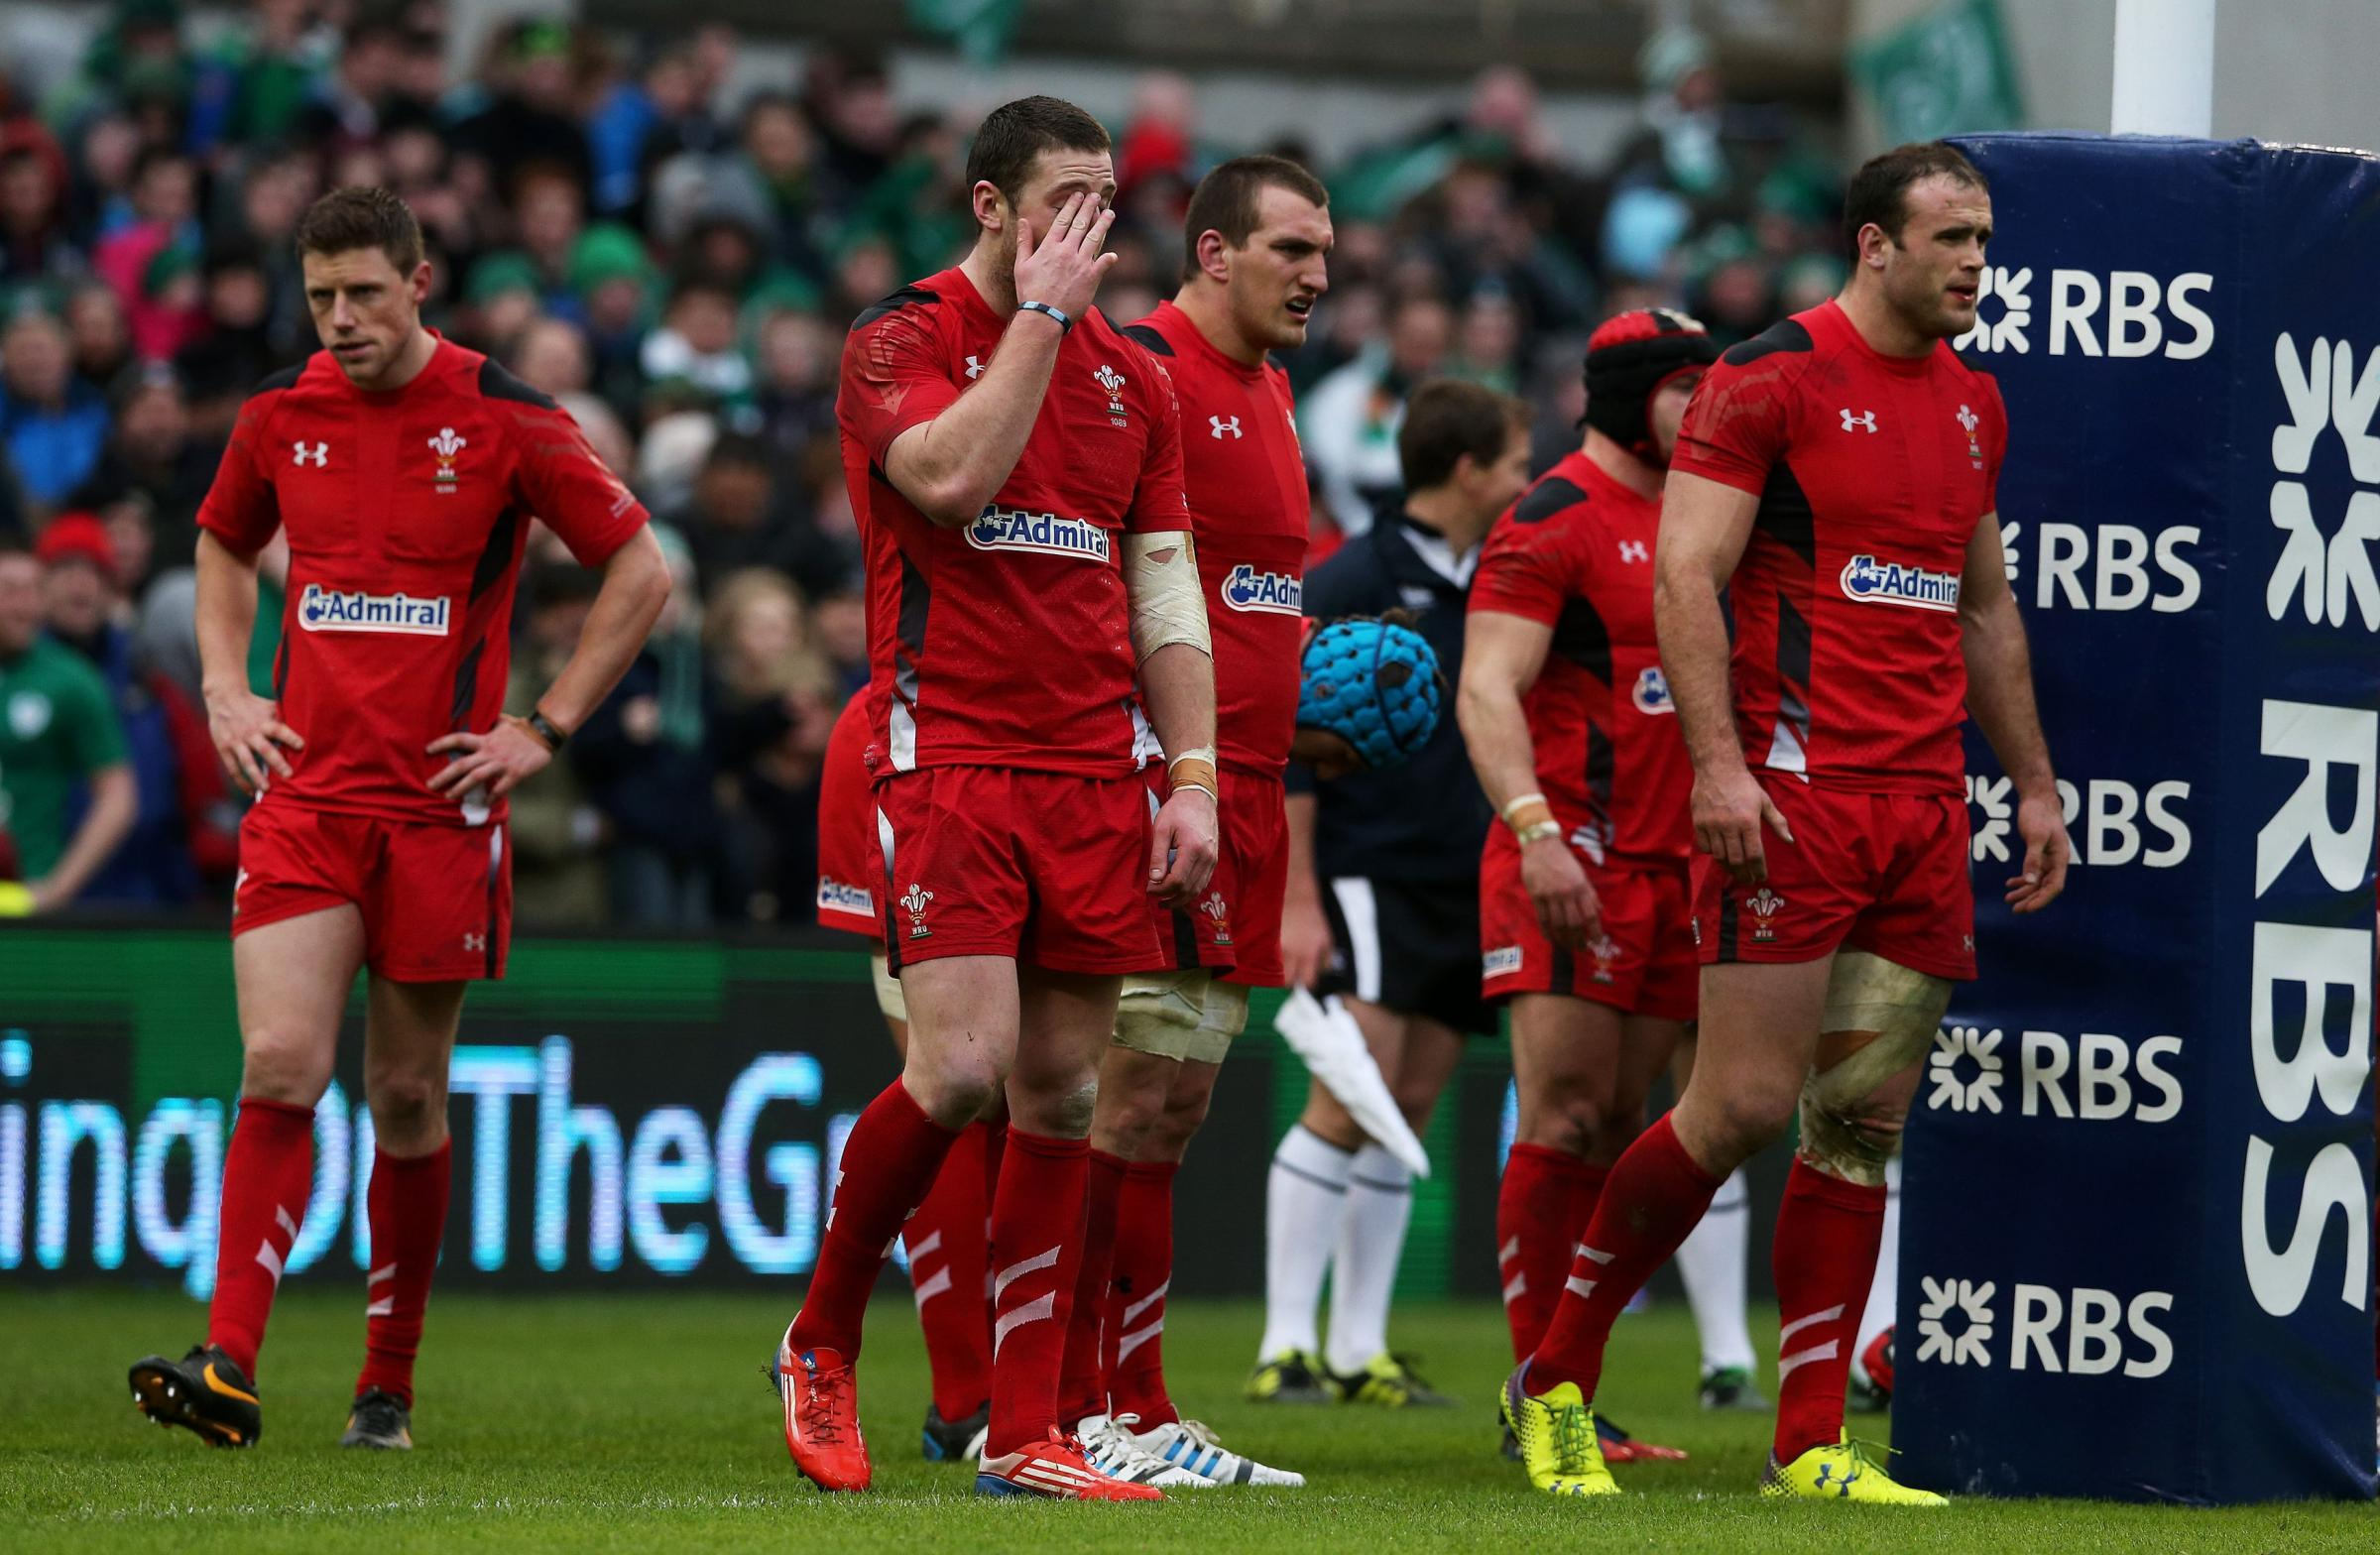 WHAT A SHOCKER: Wales were humiliated at the Aviva Stadium by a rampant Ireland